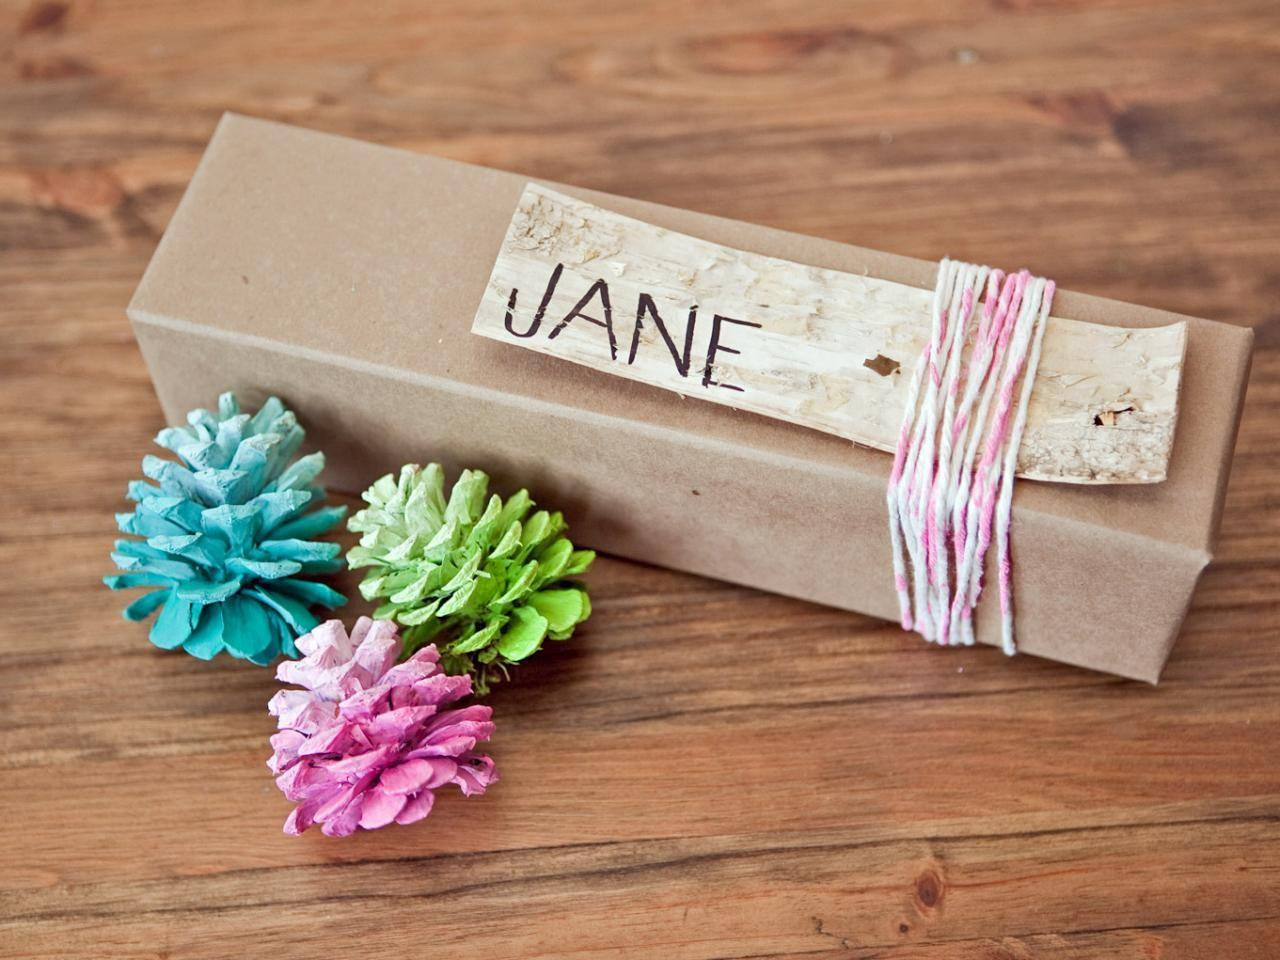 Festive Diy Holiday Party Favors